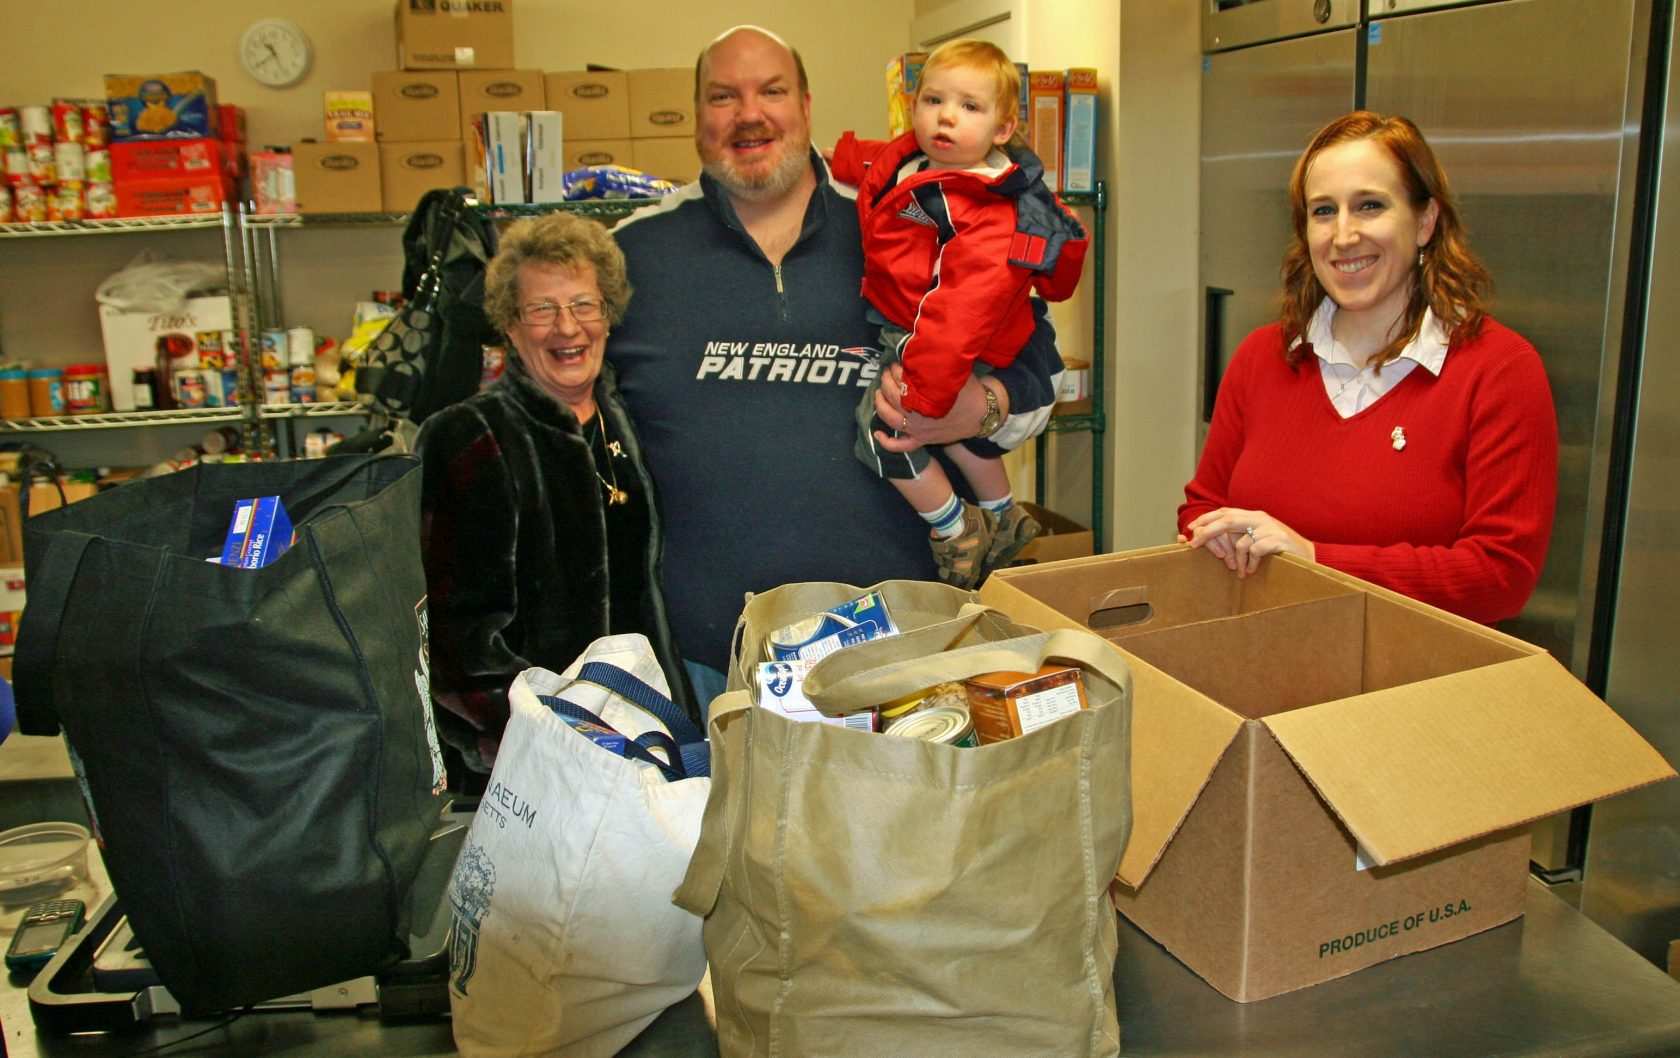 On the day before Christmas, State Representative  Don Humason dropped off a generous donation of canned goods to the Westfield Food Pantry at 101 Meadow Street, as a result of his annual sponsored Christmas skate party at Amelia Park Skating Rink.  Left to right, Dotty Noe, volunteer,  Rep. Don Humason, Quinn Humason, and volunteer, Tara Labucki.  (Photo by Don Wielgus)